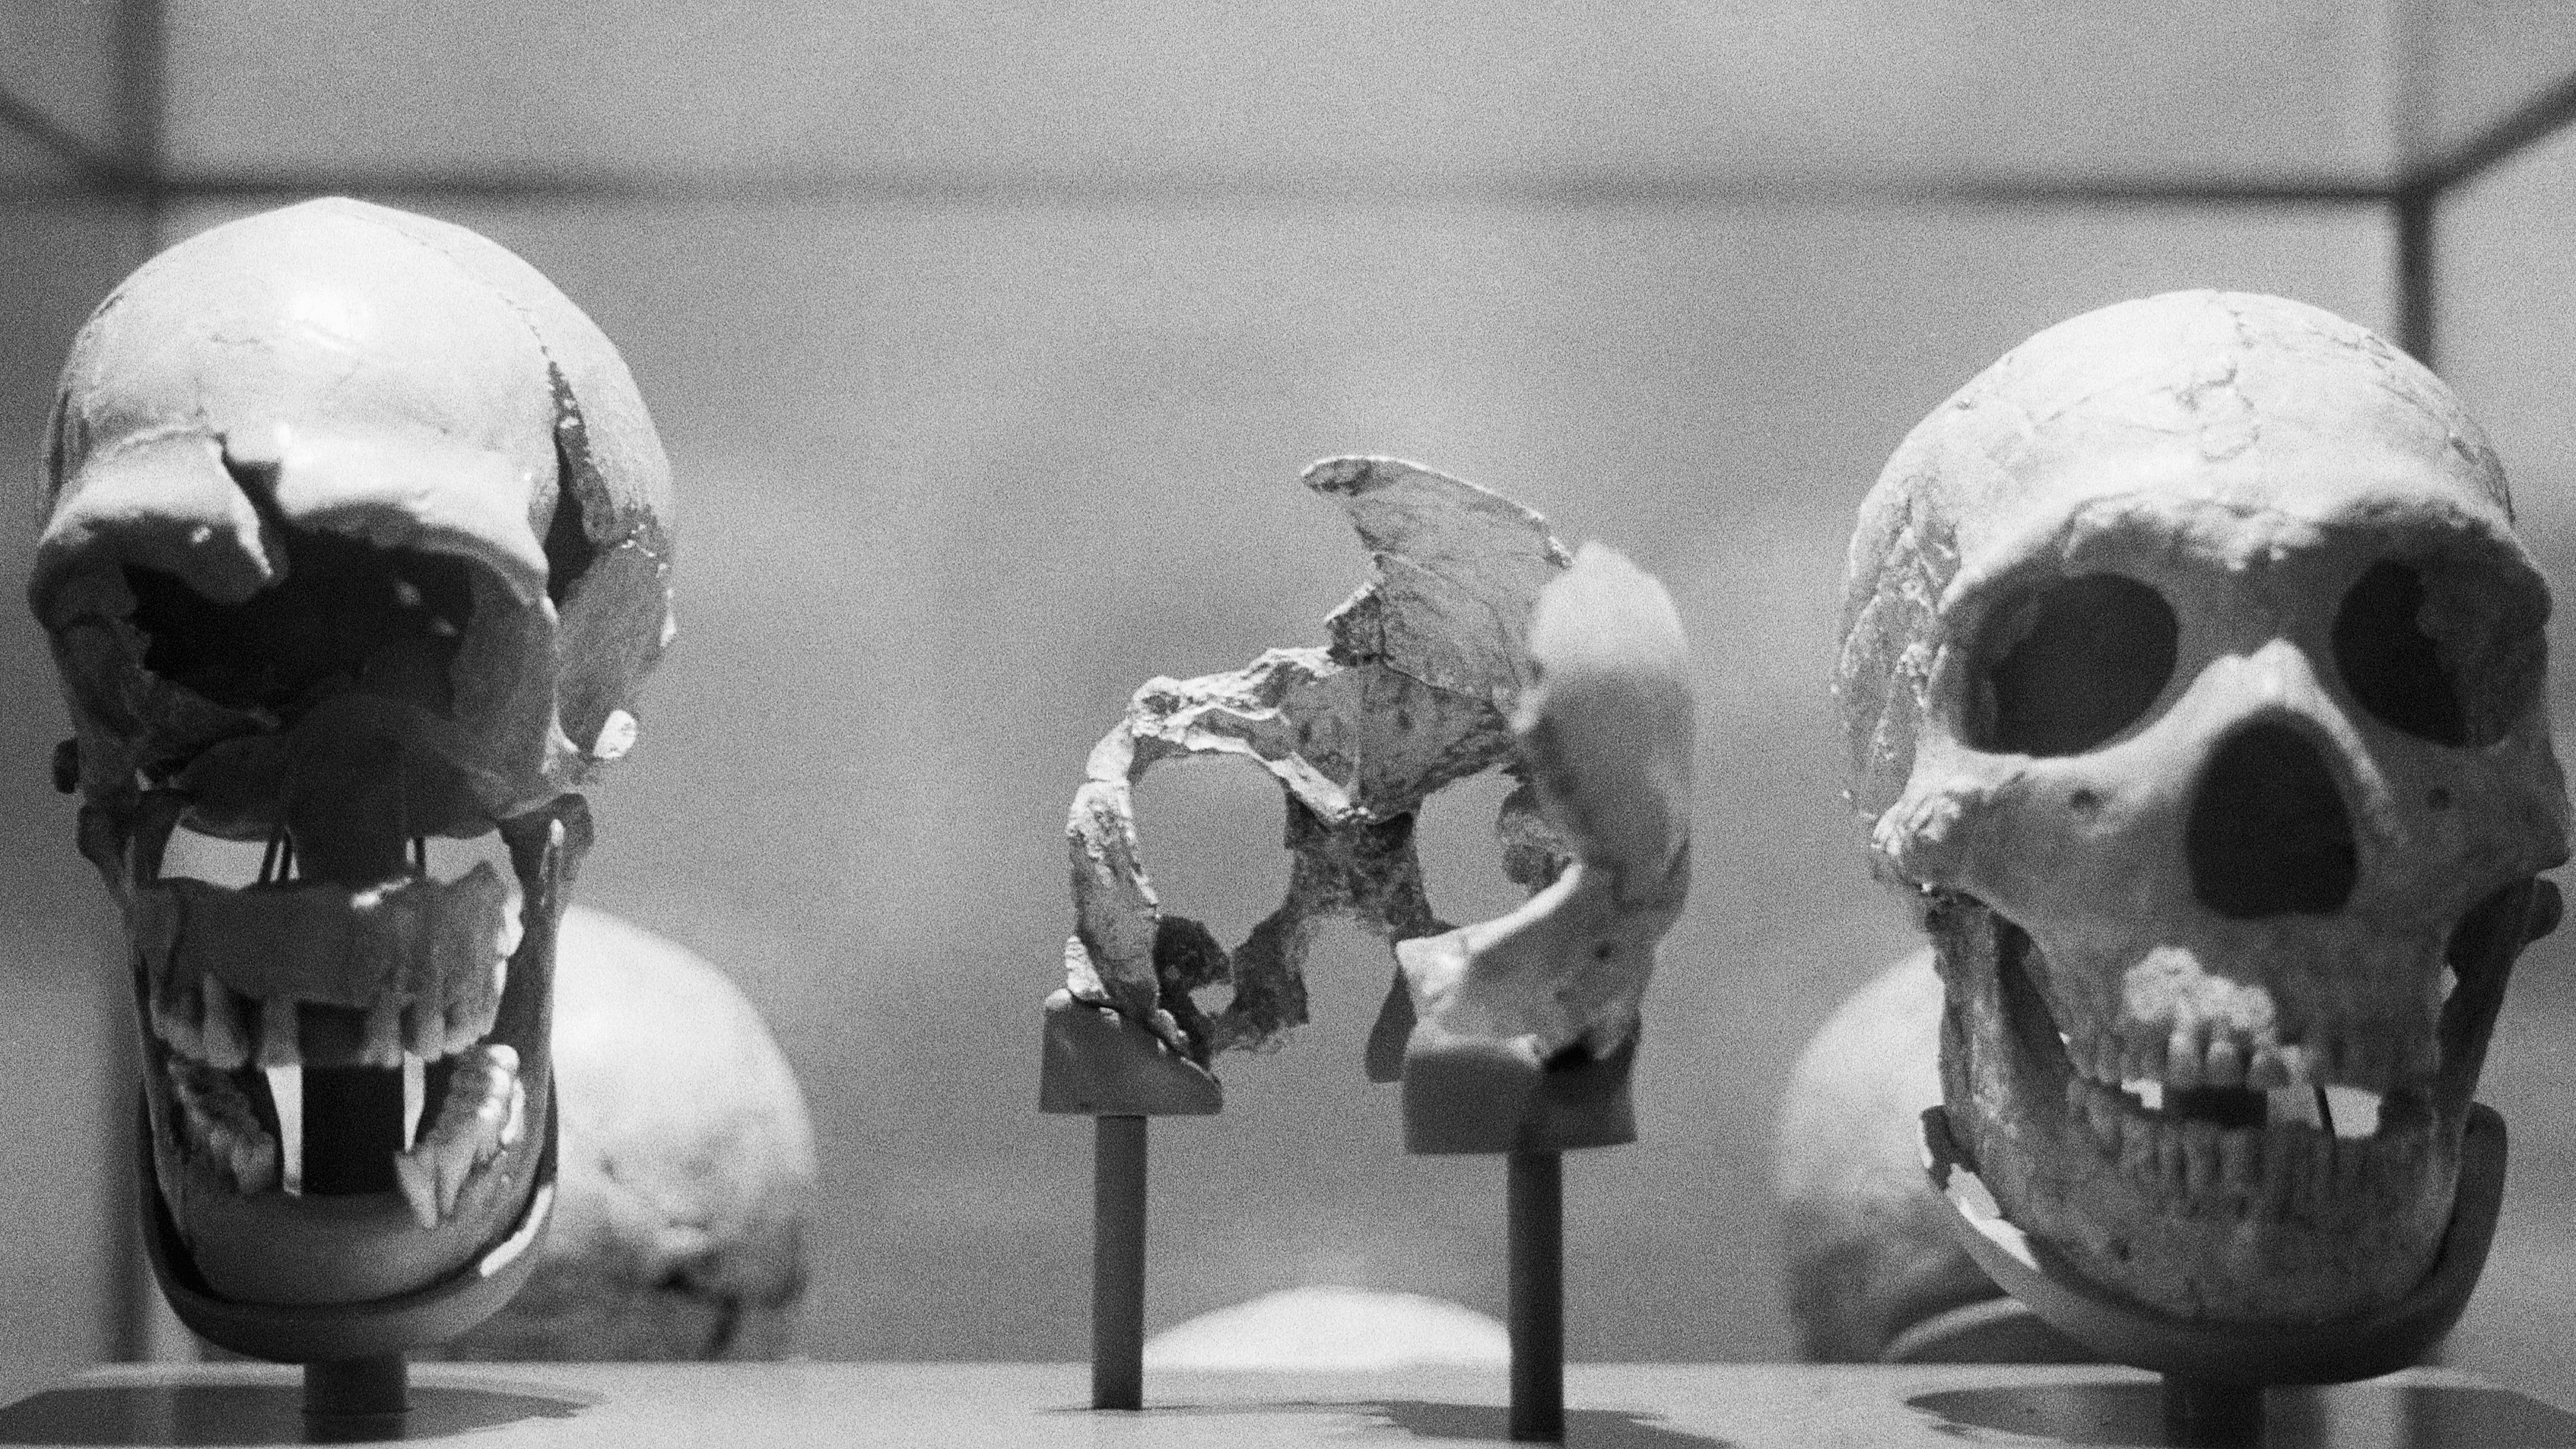 A Neanderthal skull and some of the Mousterian tools used by the Neanderthals are shown in this display during a tour of the 'Ancestors' exhibit at the American Museum of Natural History 412 (Photo by Getty)